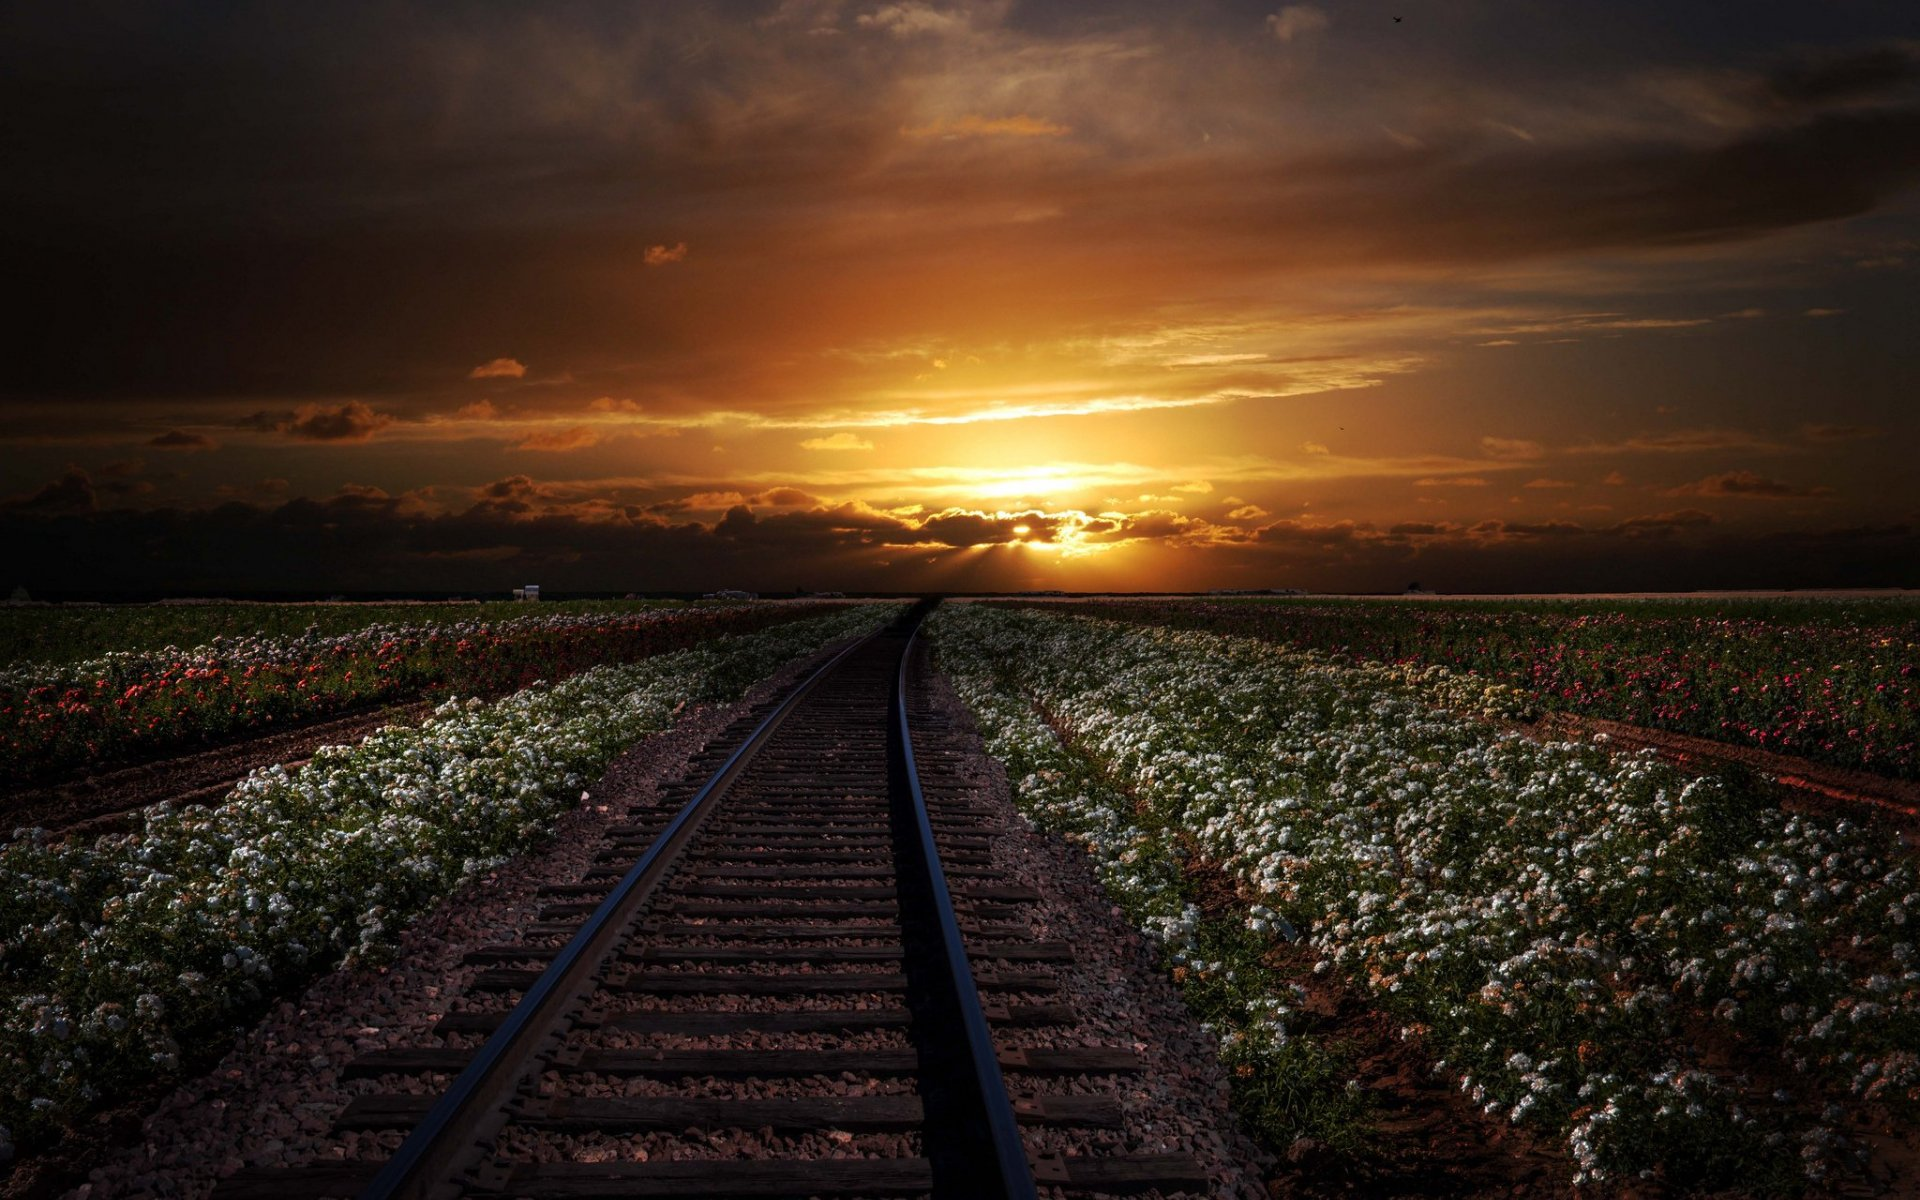 Top Hd 3d Wallpaper For Mobile Rail Road White Flowers Sunset Wallpapers Rail Road